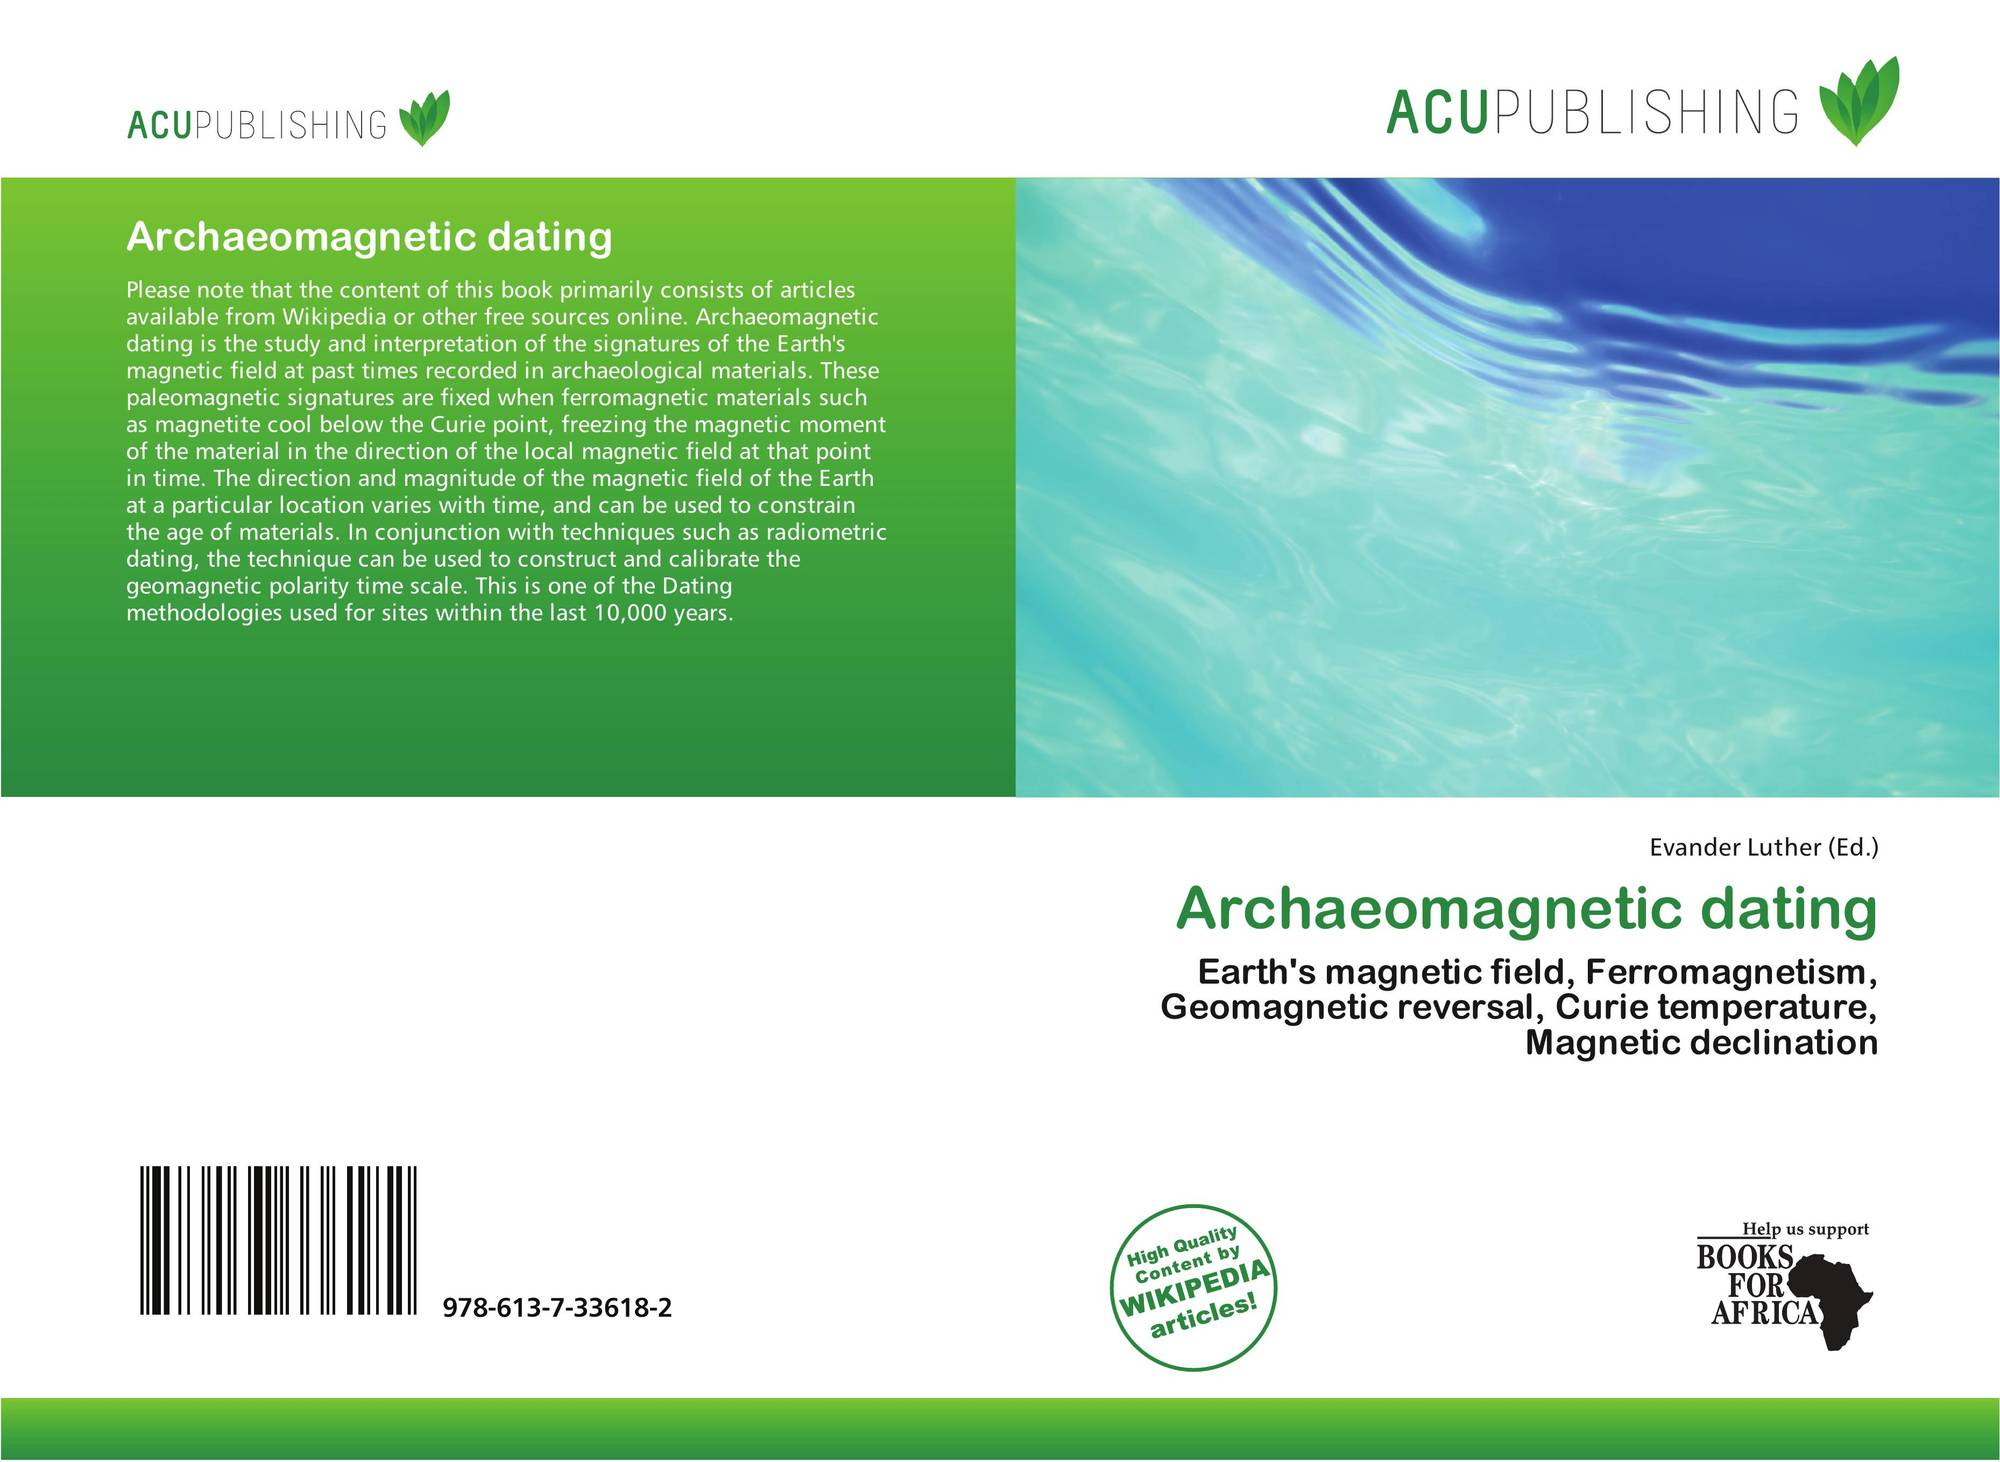 Archaeomagnetic dating, 978-613-7-33618-2, 6137336182